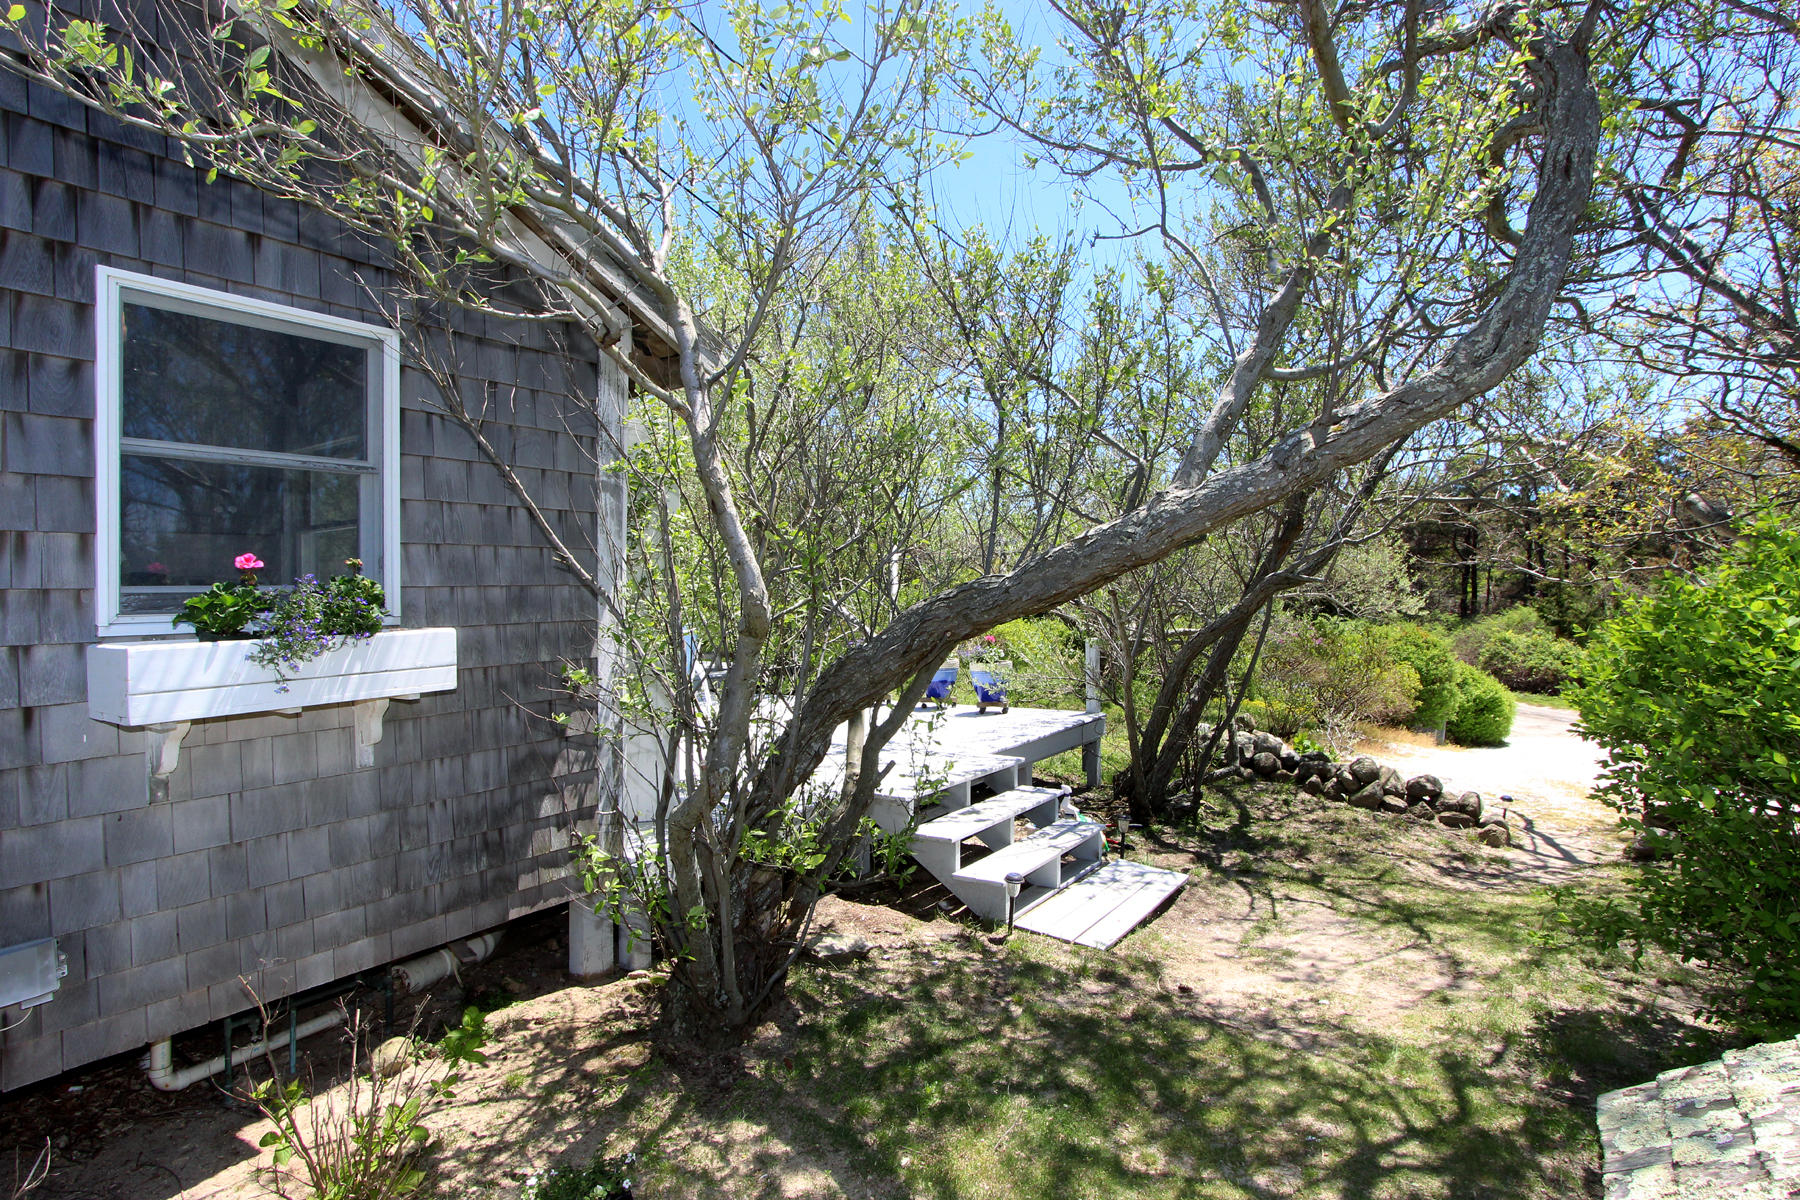 192 robbins hill road brewster ma 02631 property image 45